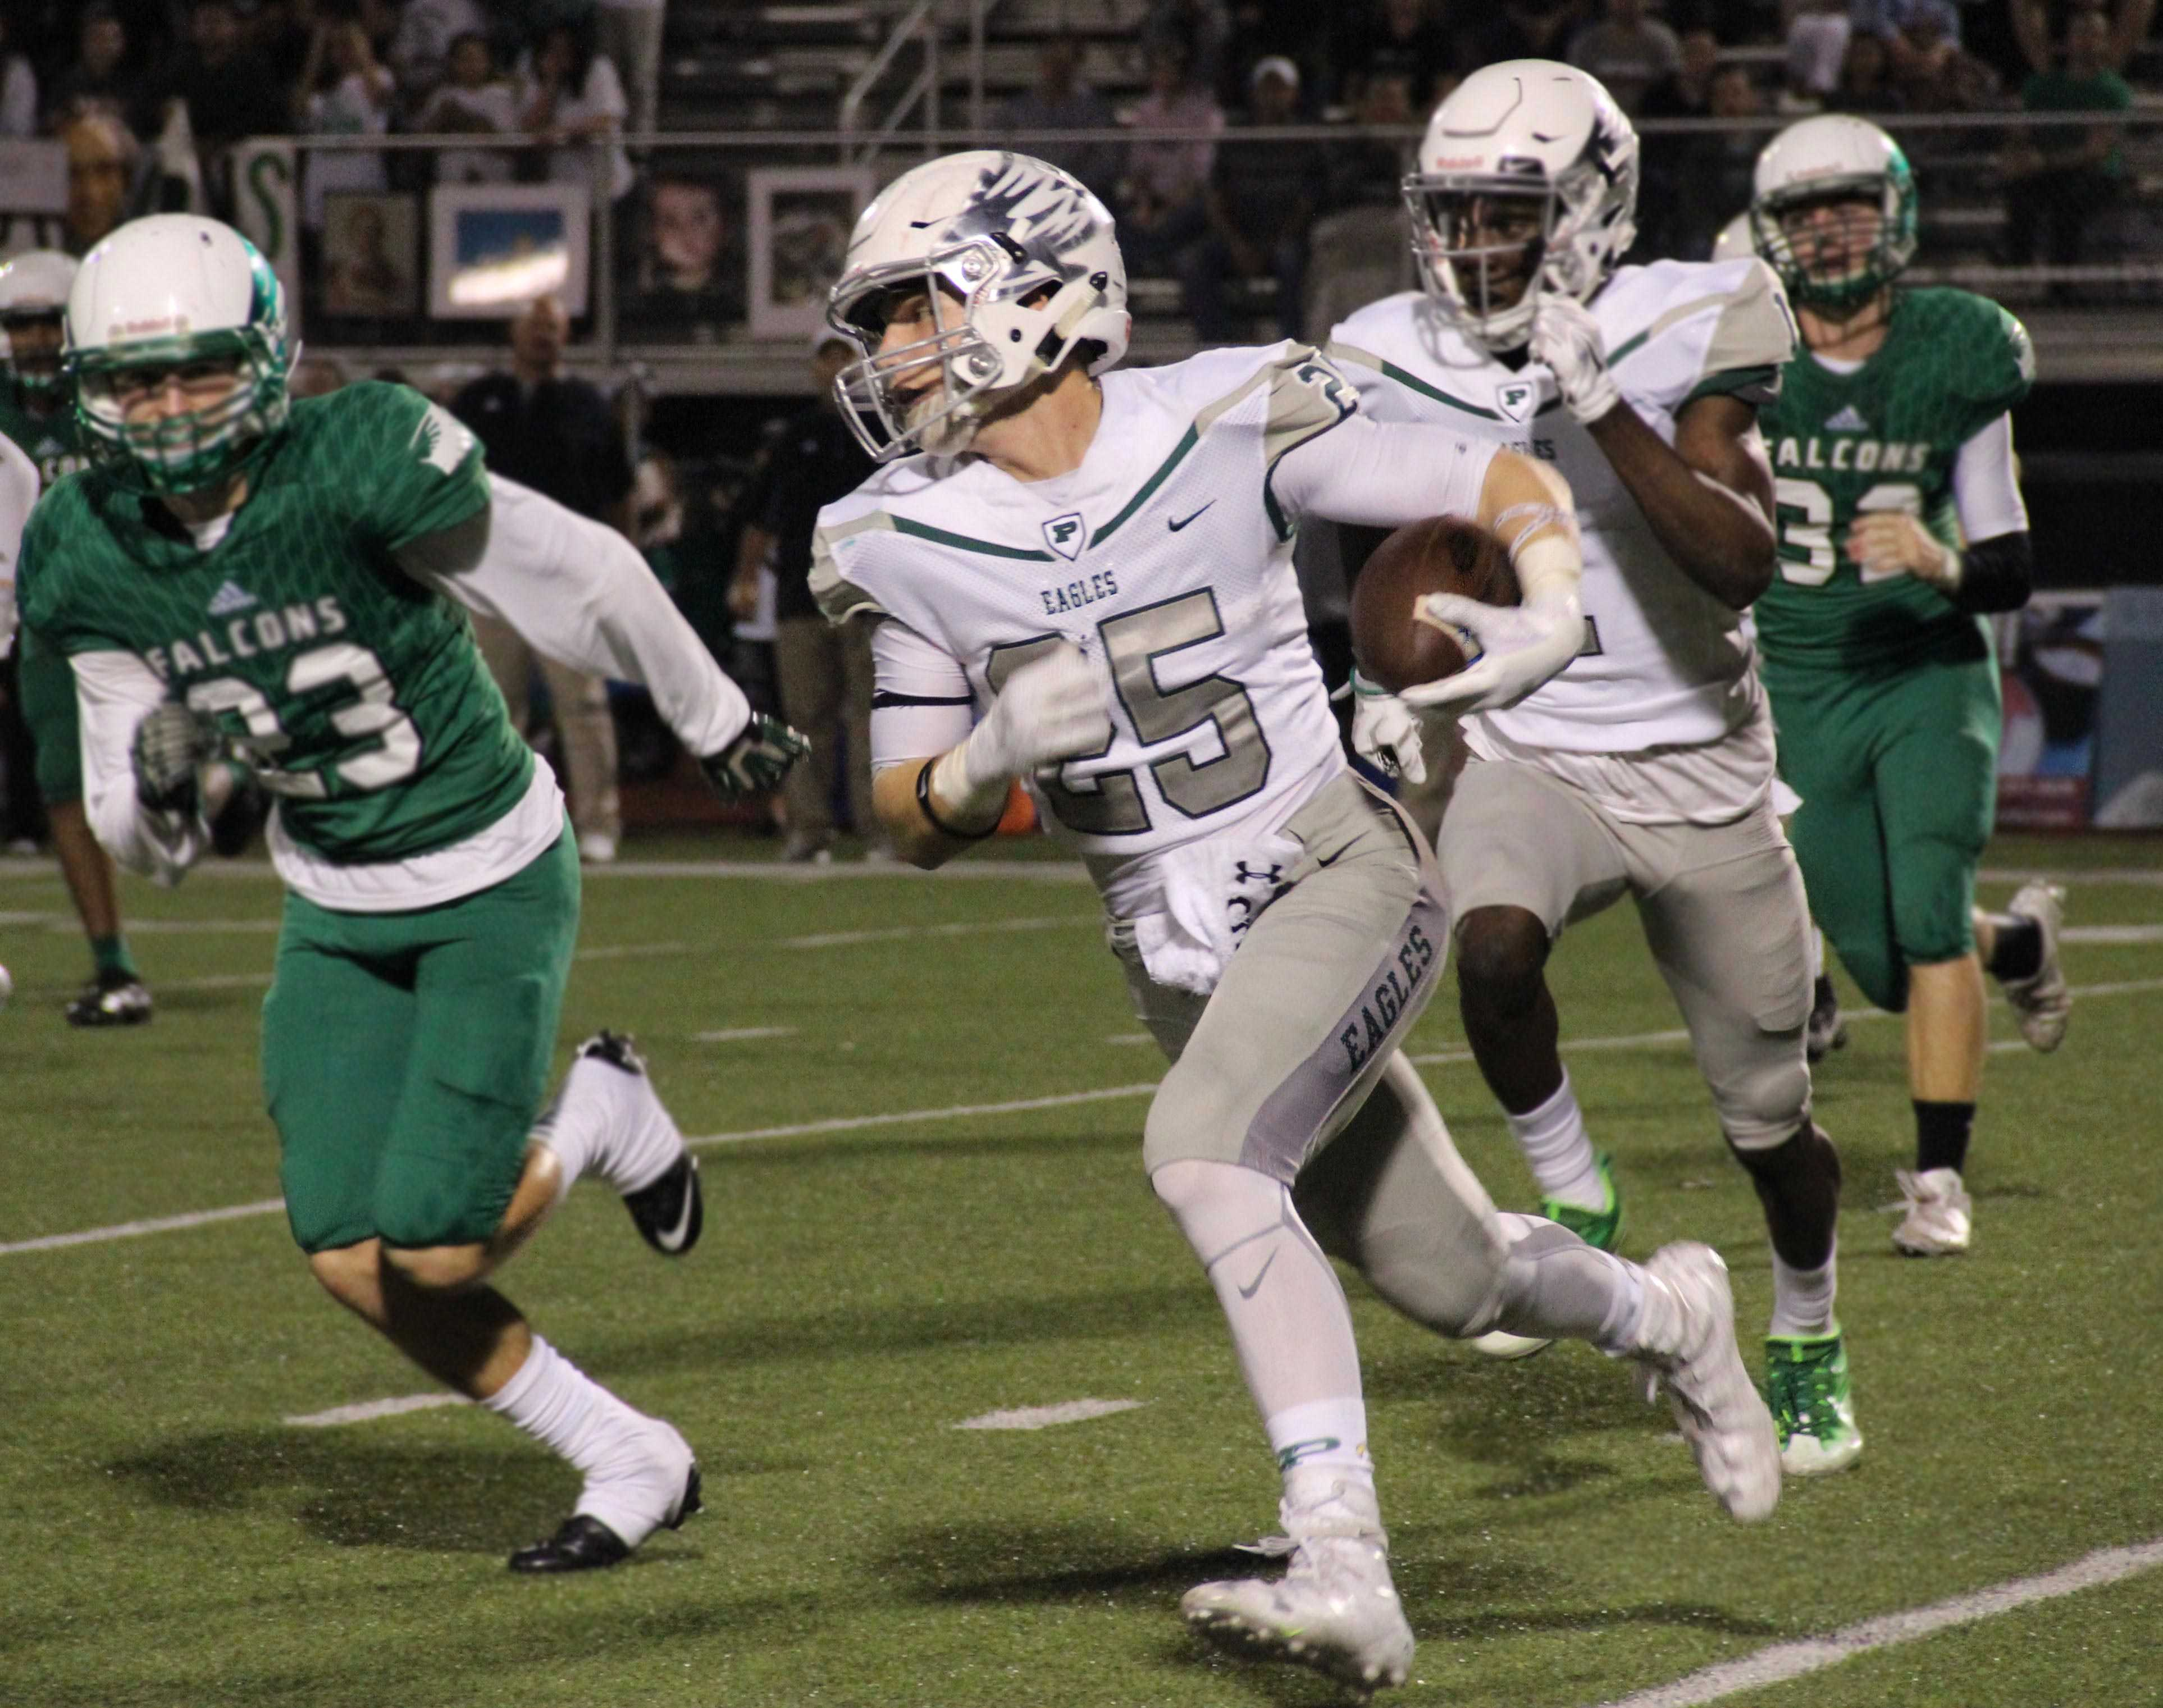 Cody Gallegos runs the ball against Lake Dallas in the Eagles only district loss of the season.